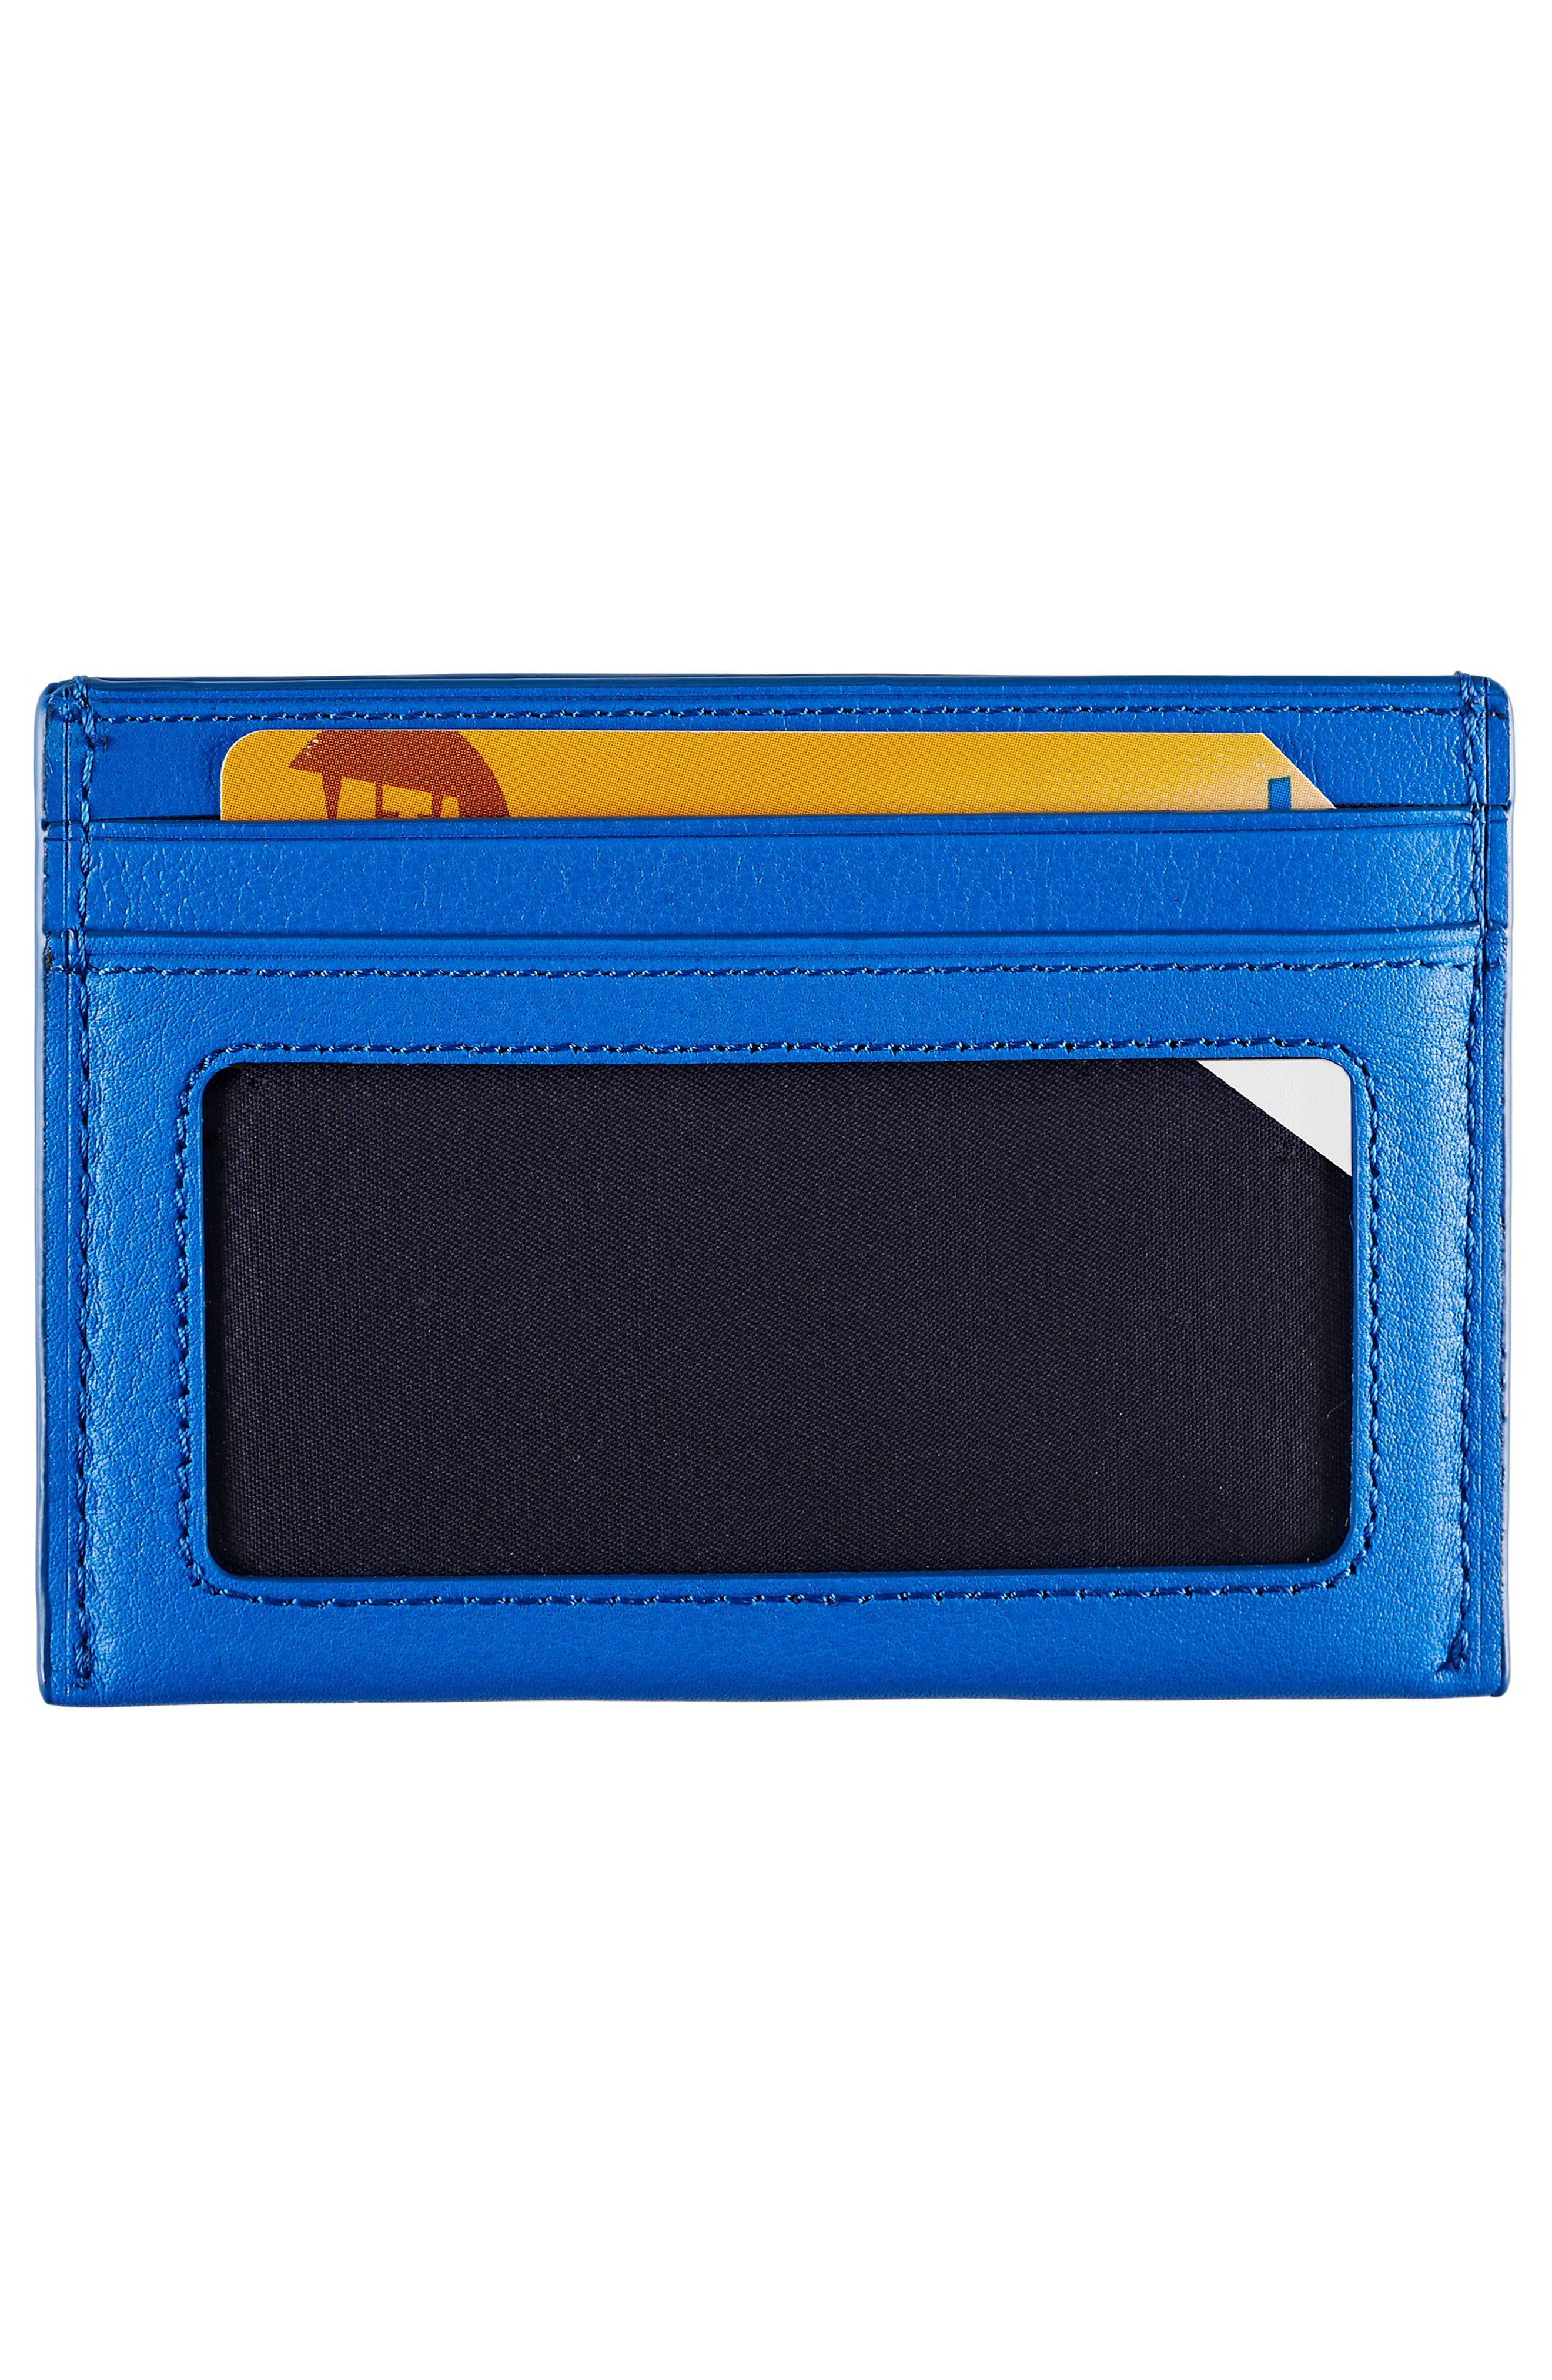 Leather Card Case,                             Alternate thumbnail 2, color,                             Electric Blue Textured